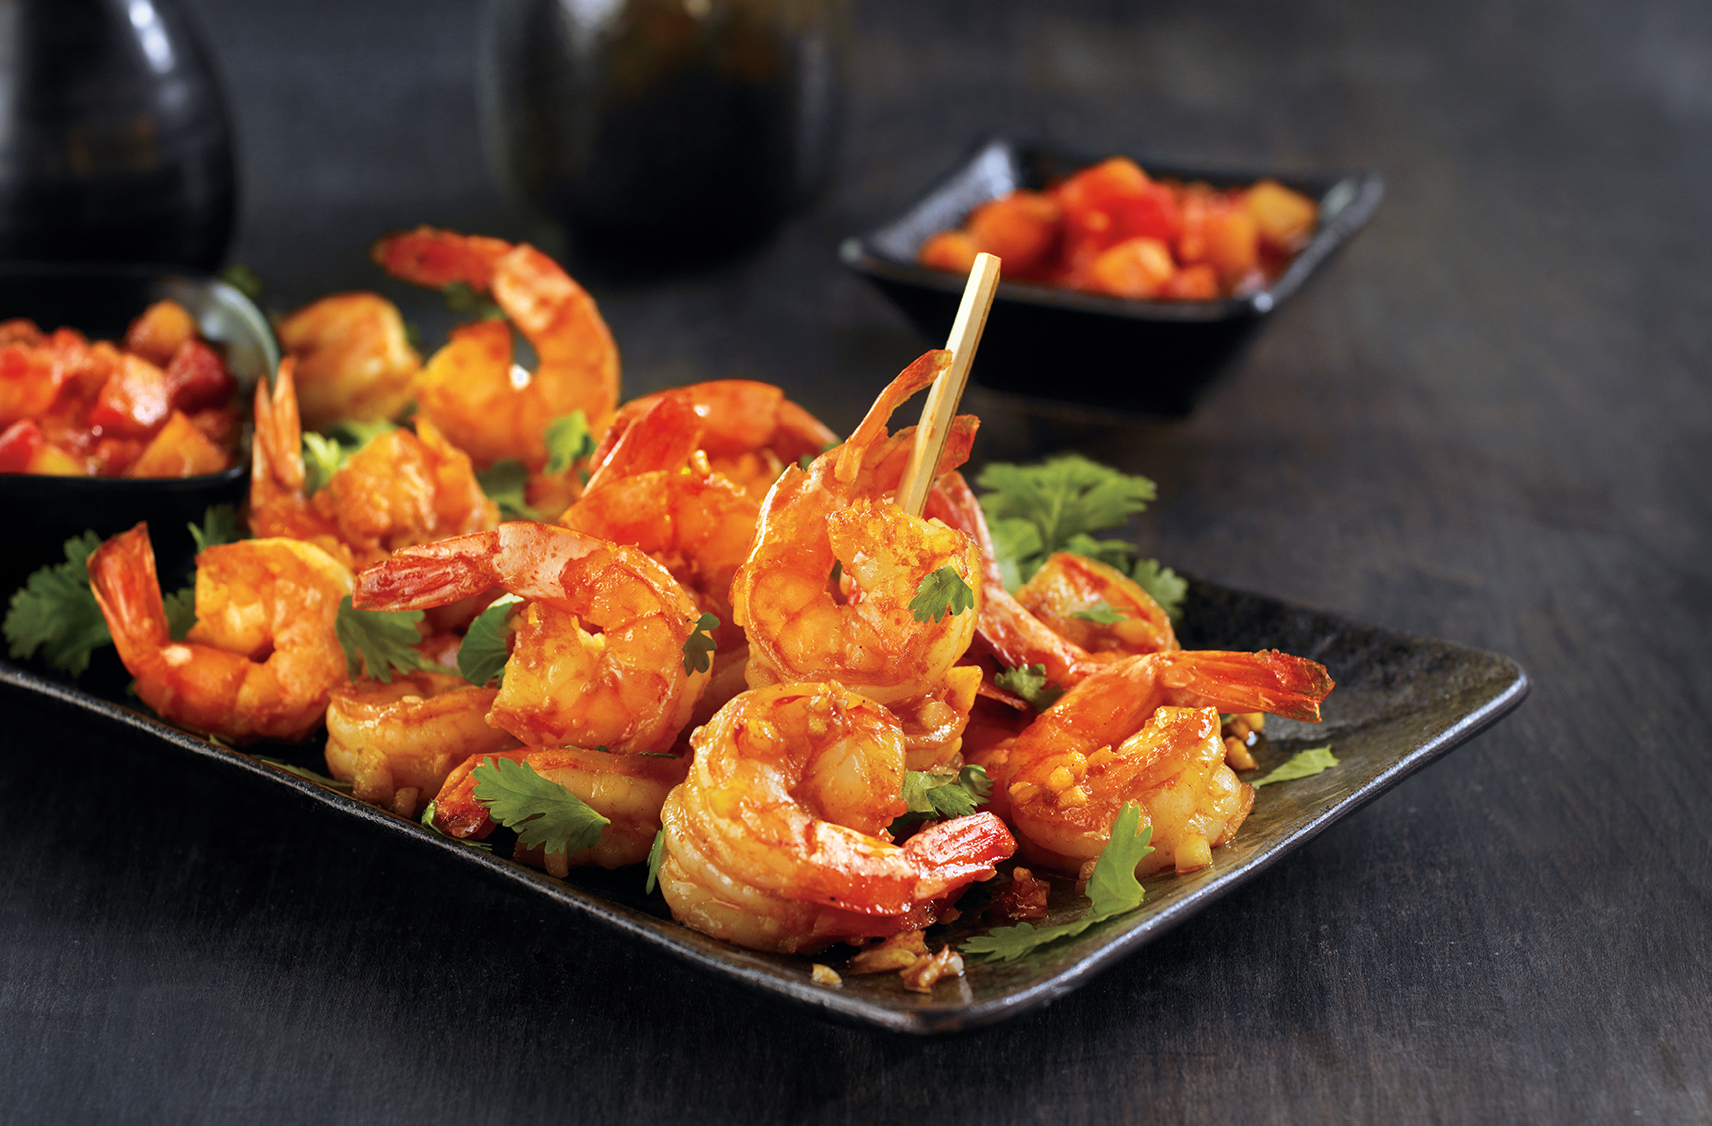 A platter of sautéed paprika-dusted shrimp by a bowl of peach mango salsa